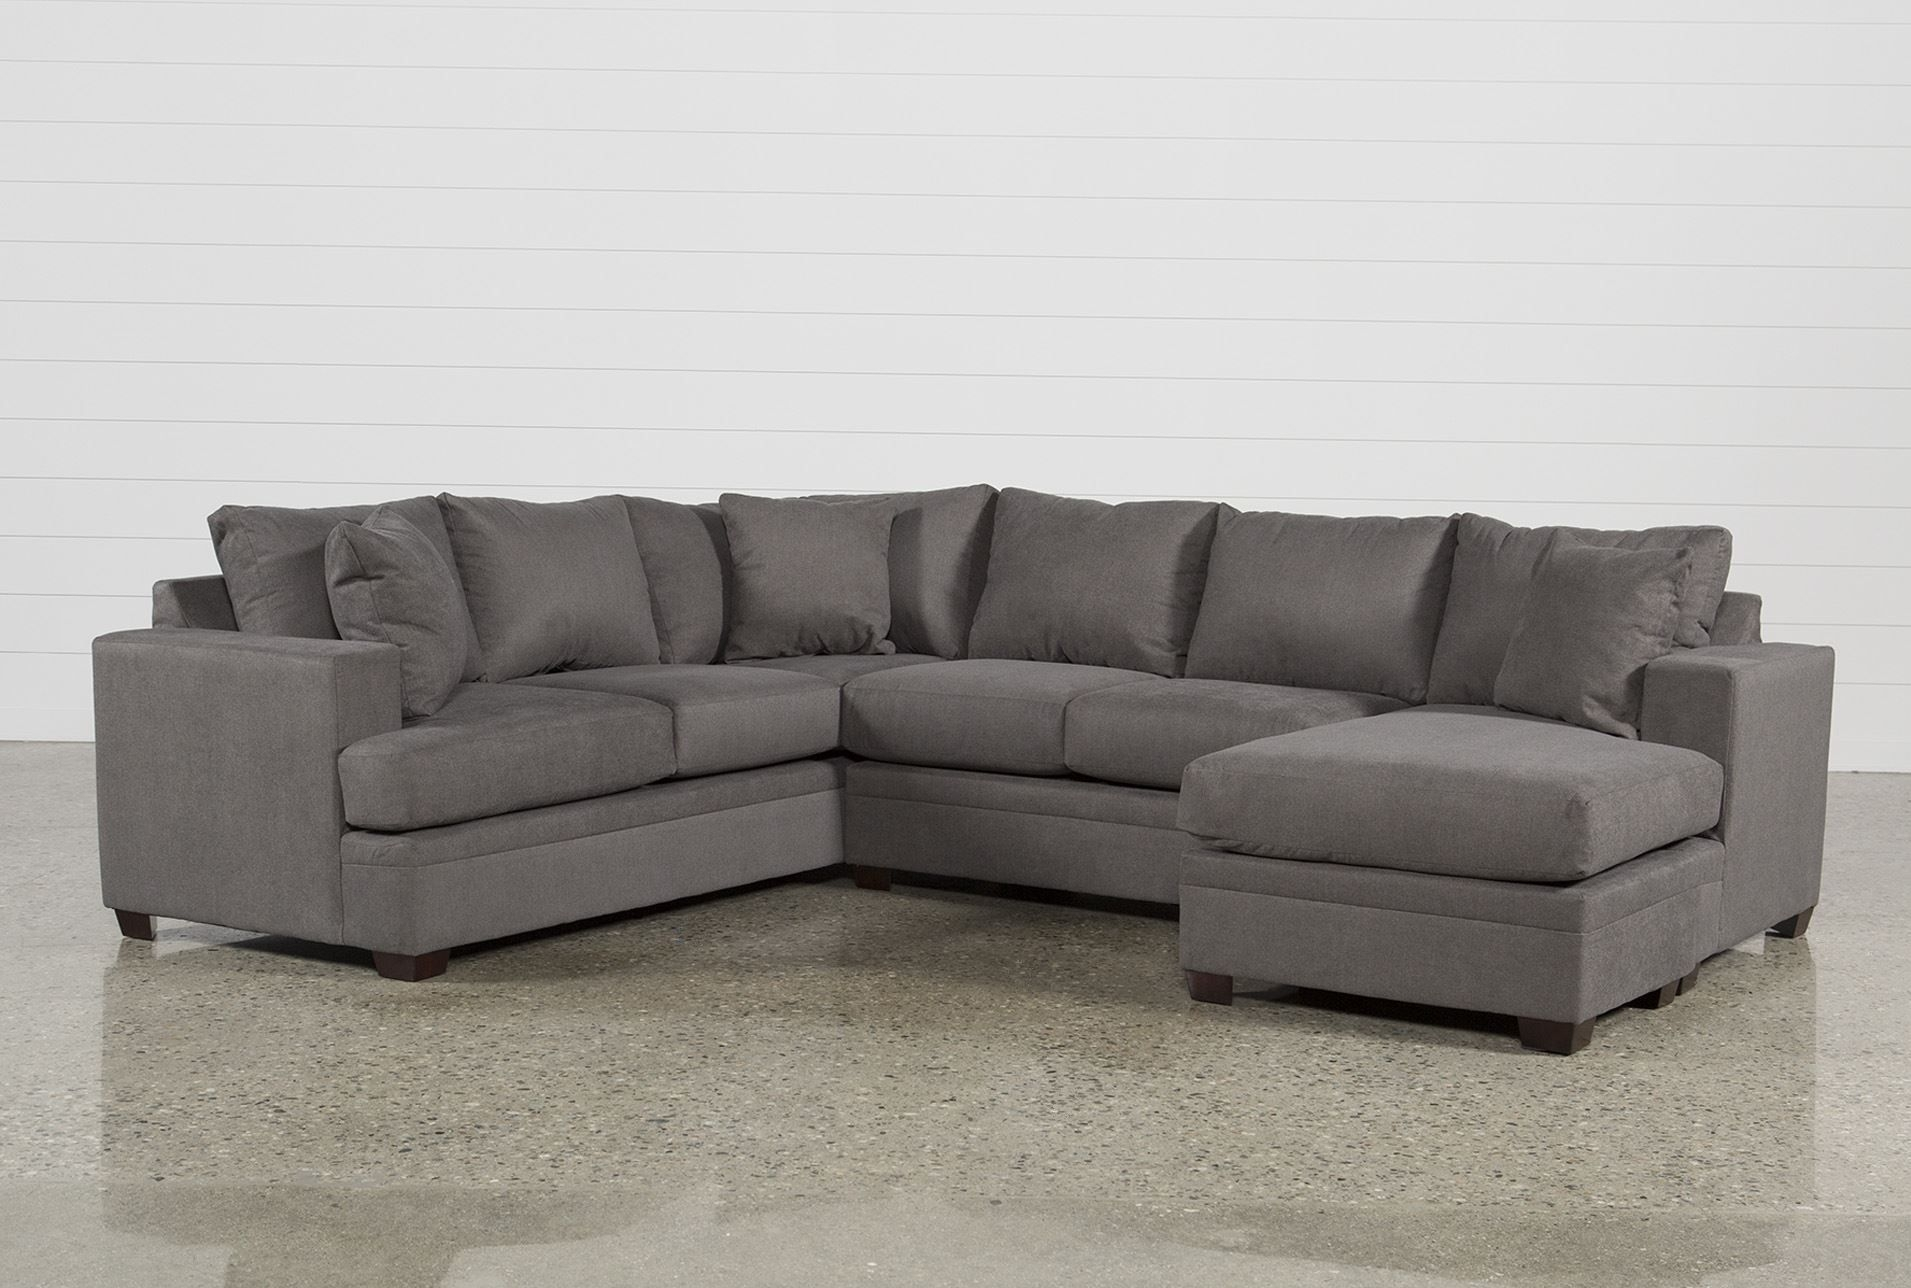 Kerri 2 Piece Sectional W/raf Chaise In 2018 | Products | Pinterest In Mcculla Sofa Sectionals With Reversible Chaise (View 7 of 25)